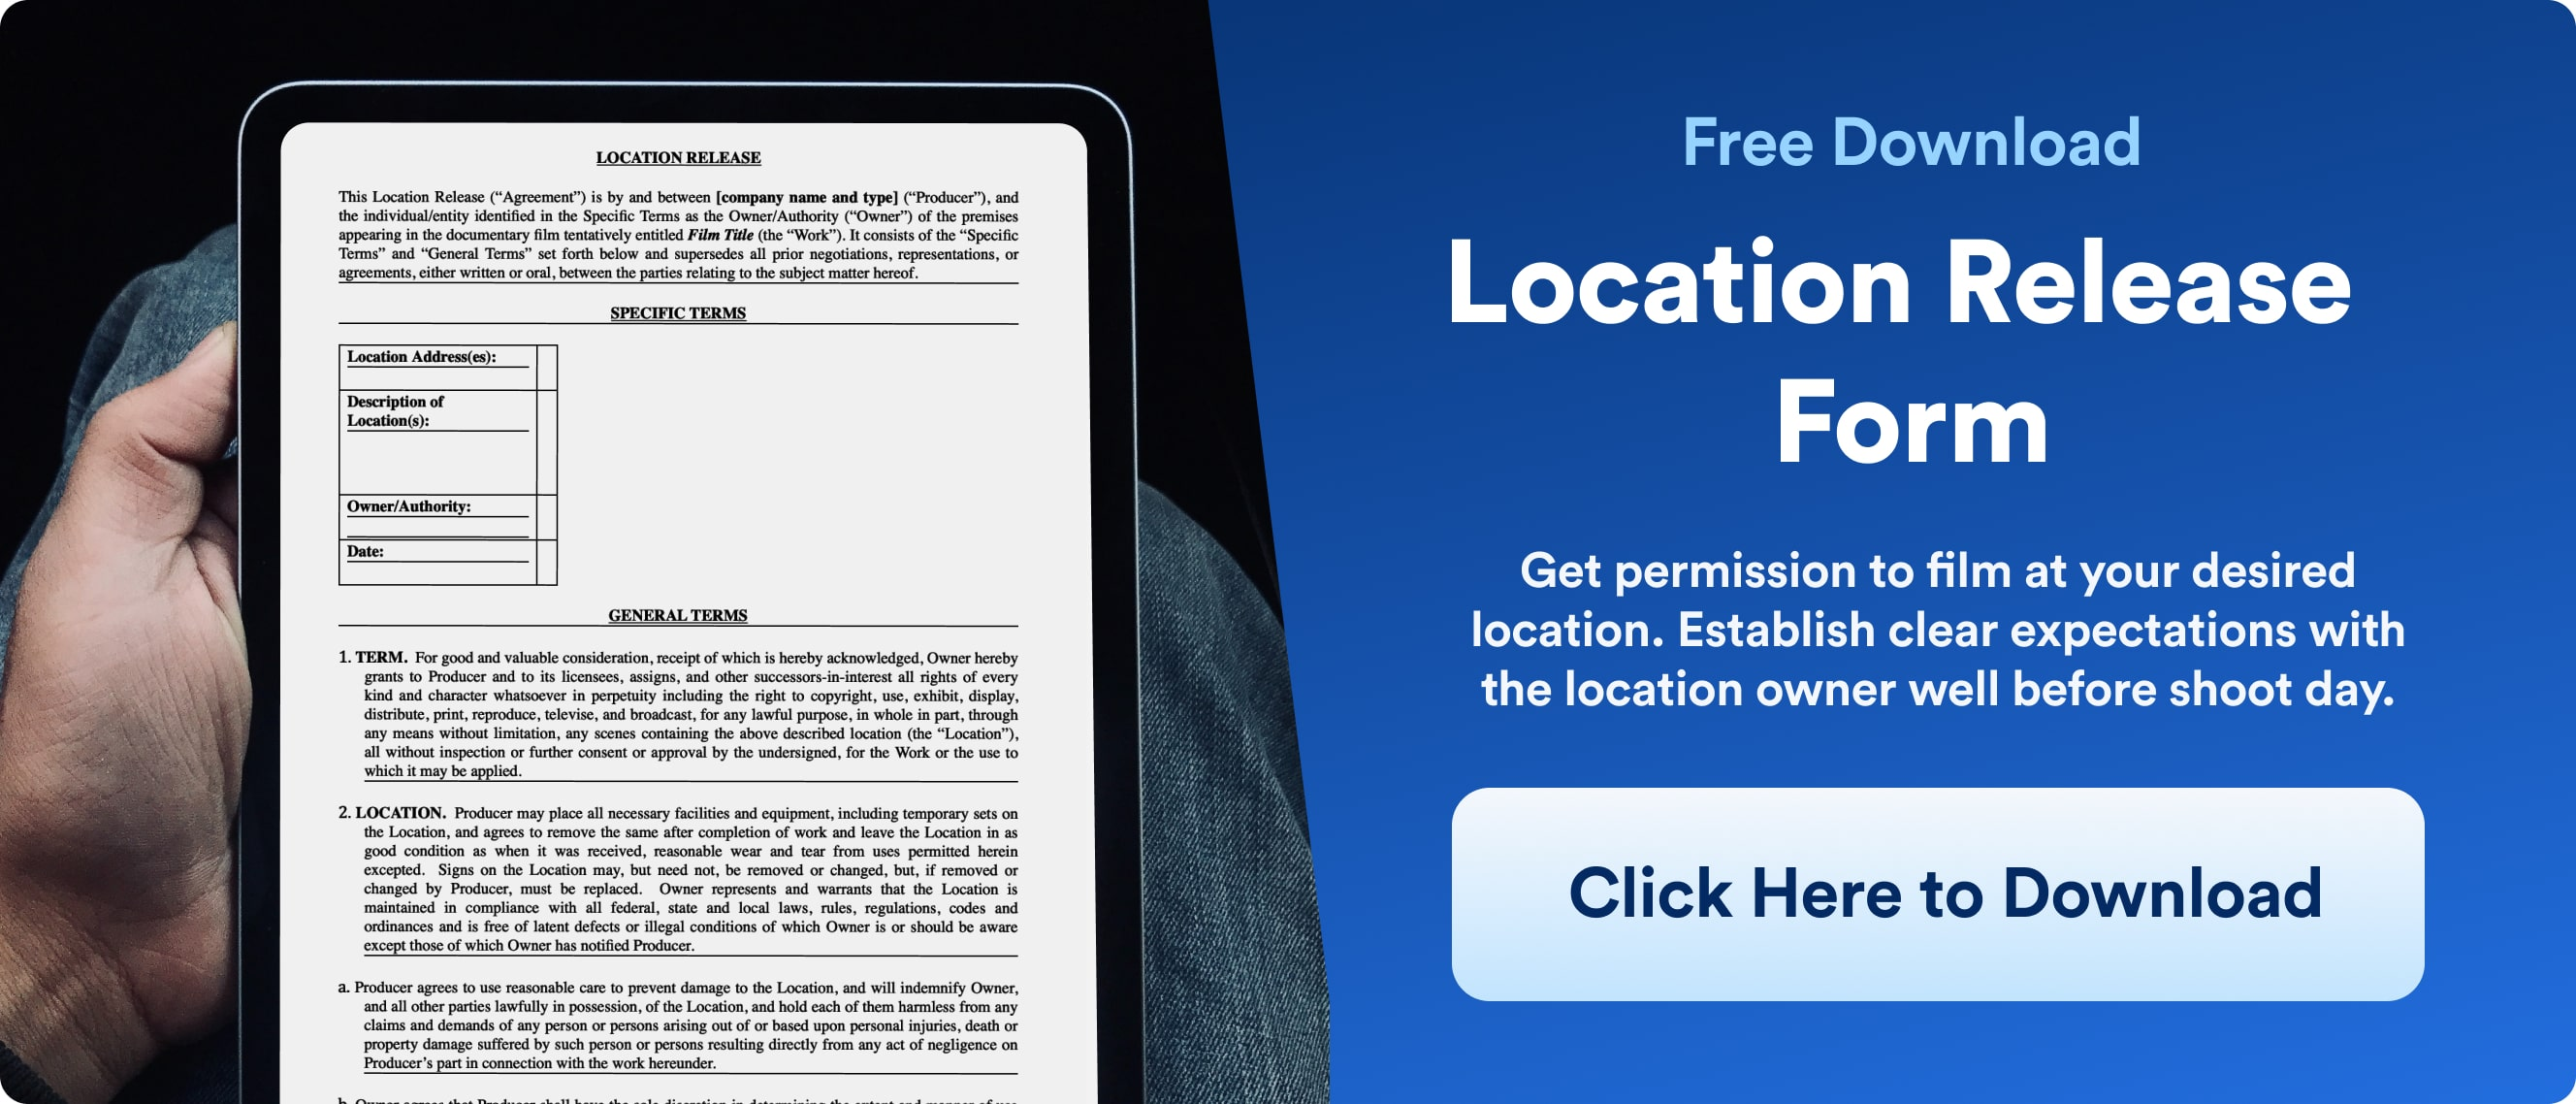 Location Release Form - Template Download - Wrapbook